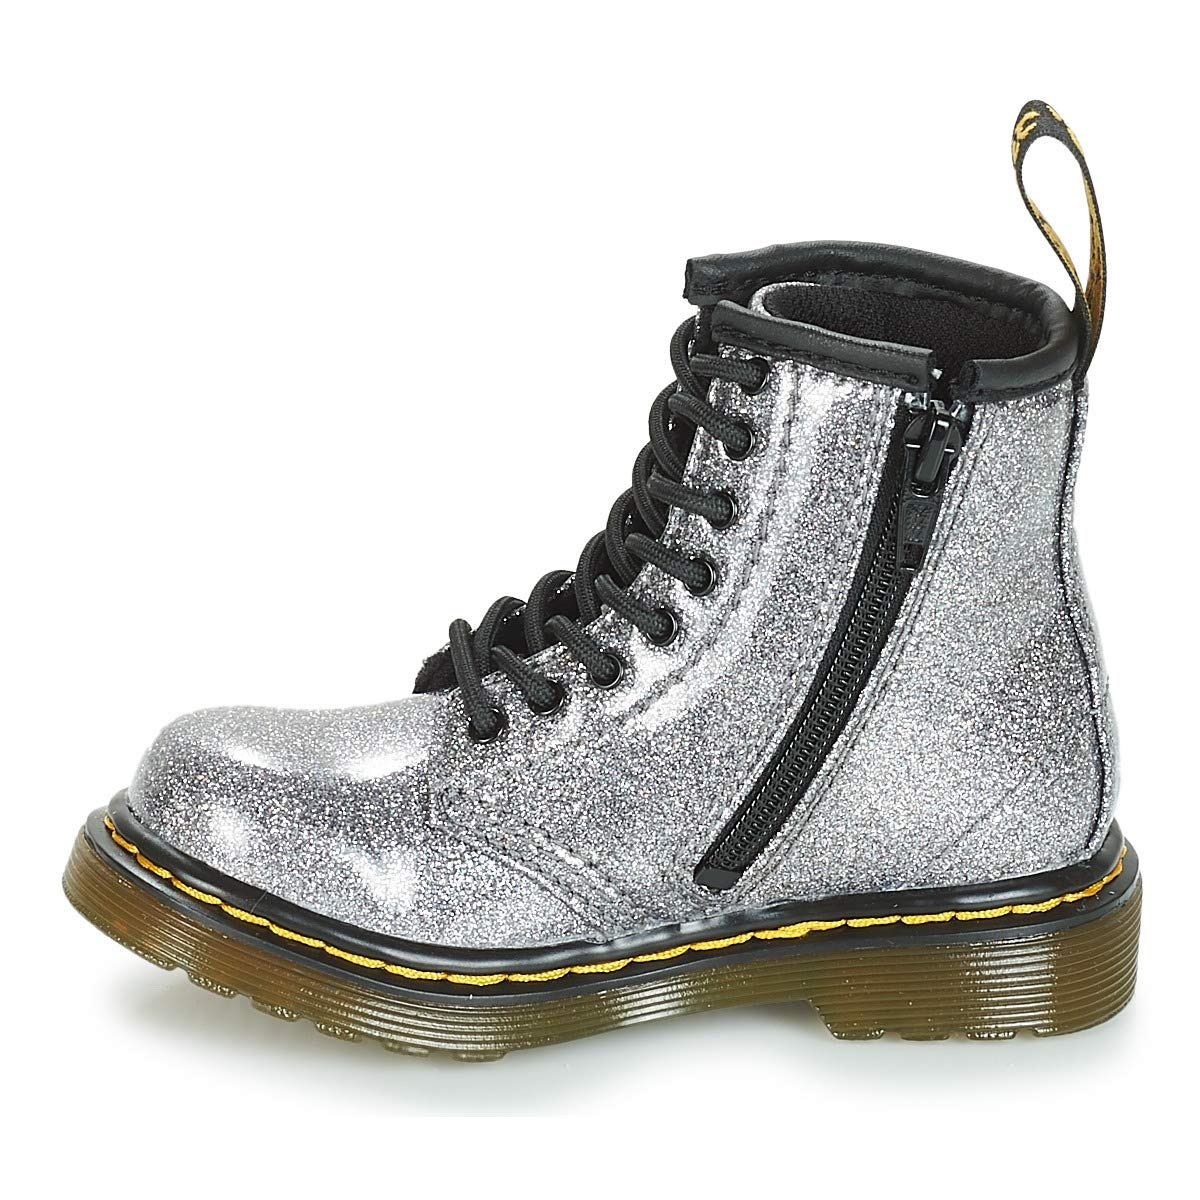 0931c2777293 Dr Martens Kids Collection Womens 1460 Patent Glitter Toddler Brooklee Boot  Toddler Dr Martens Kid's Collection ...